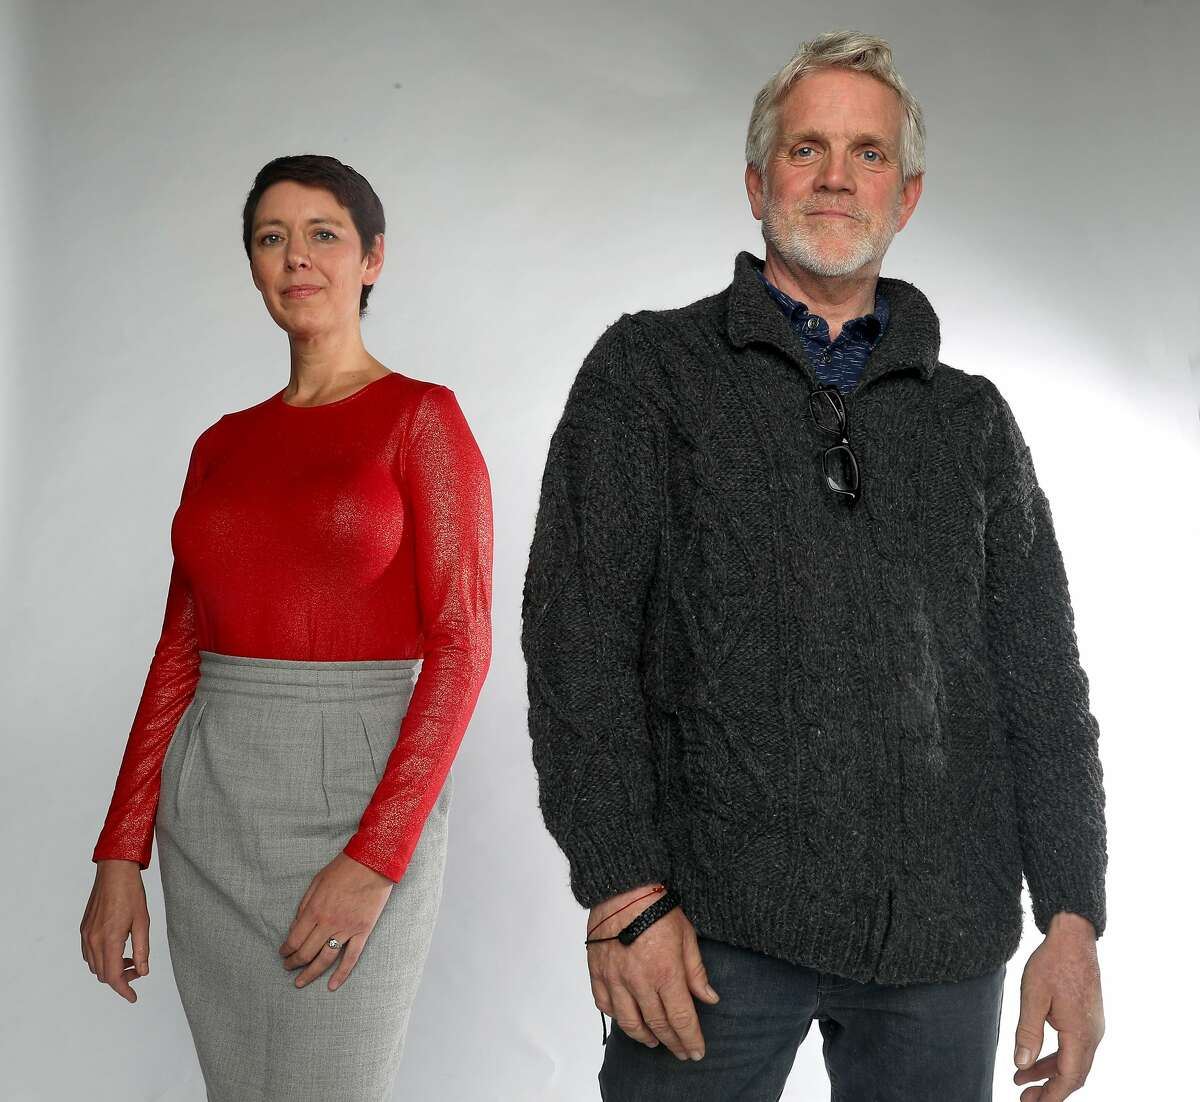 Author Mary Ladd (left) has launched her guide to navigating cancer �The Wig Diaries� with illustrator Don Asmussen (right) creator of the Chronicle's Bad Reporter comic strip as they talk about living with cancer on Thursday, Oct. 17, 2019, in San Francisco, Calif.